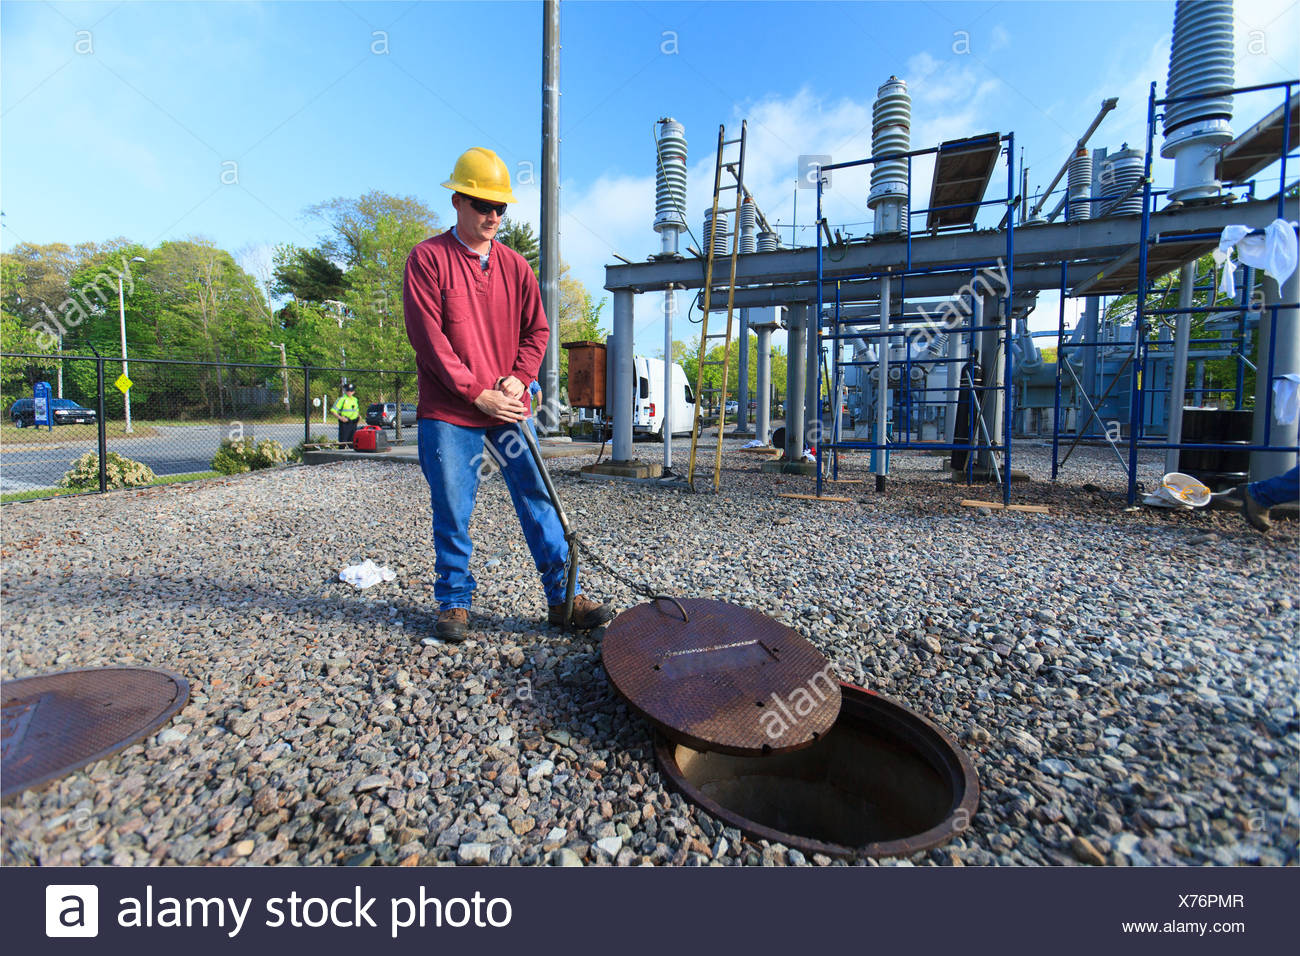 Power engineer accessing manhole cover at high voltage power distribution station, Braintree, Massachusetts, USA - Stock Image